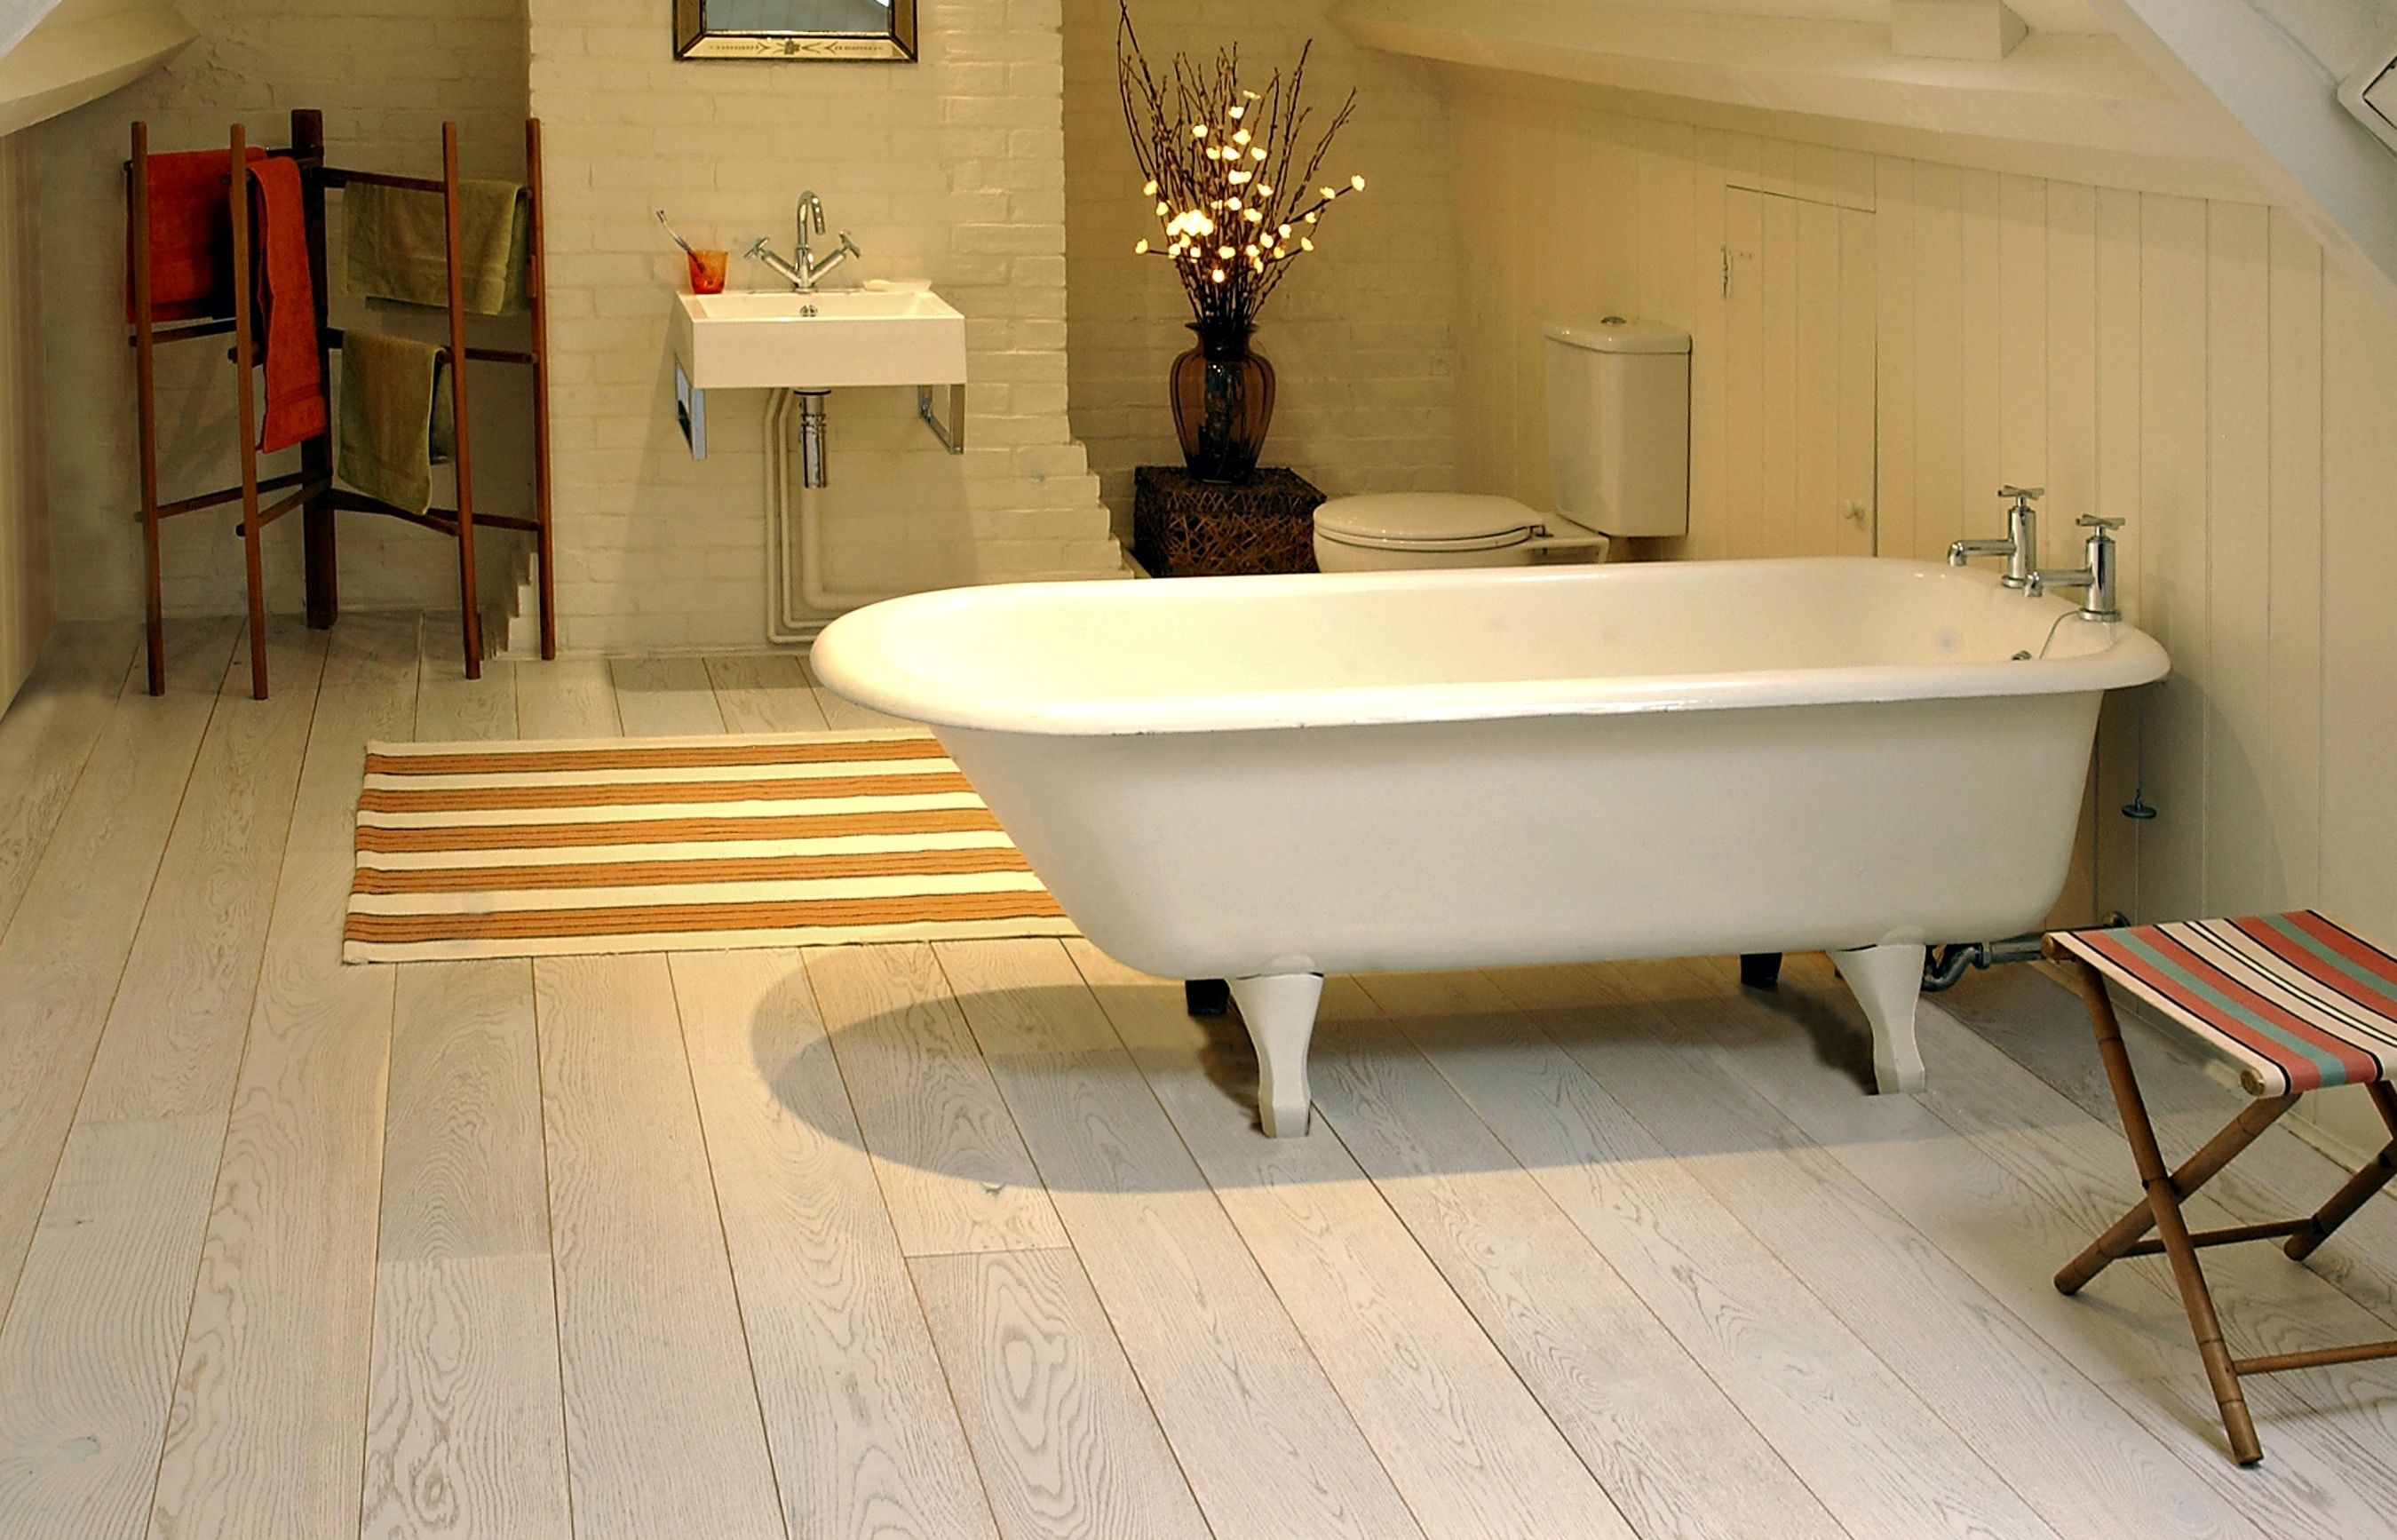 Types Of Vinyl Flooring For Bathrooms In The Event You Are Doubt Regarding Kind Need On Your Own Bat